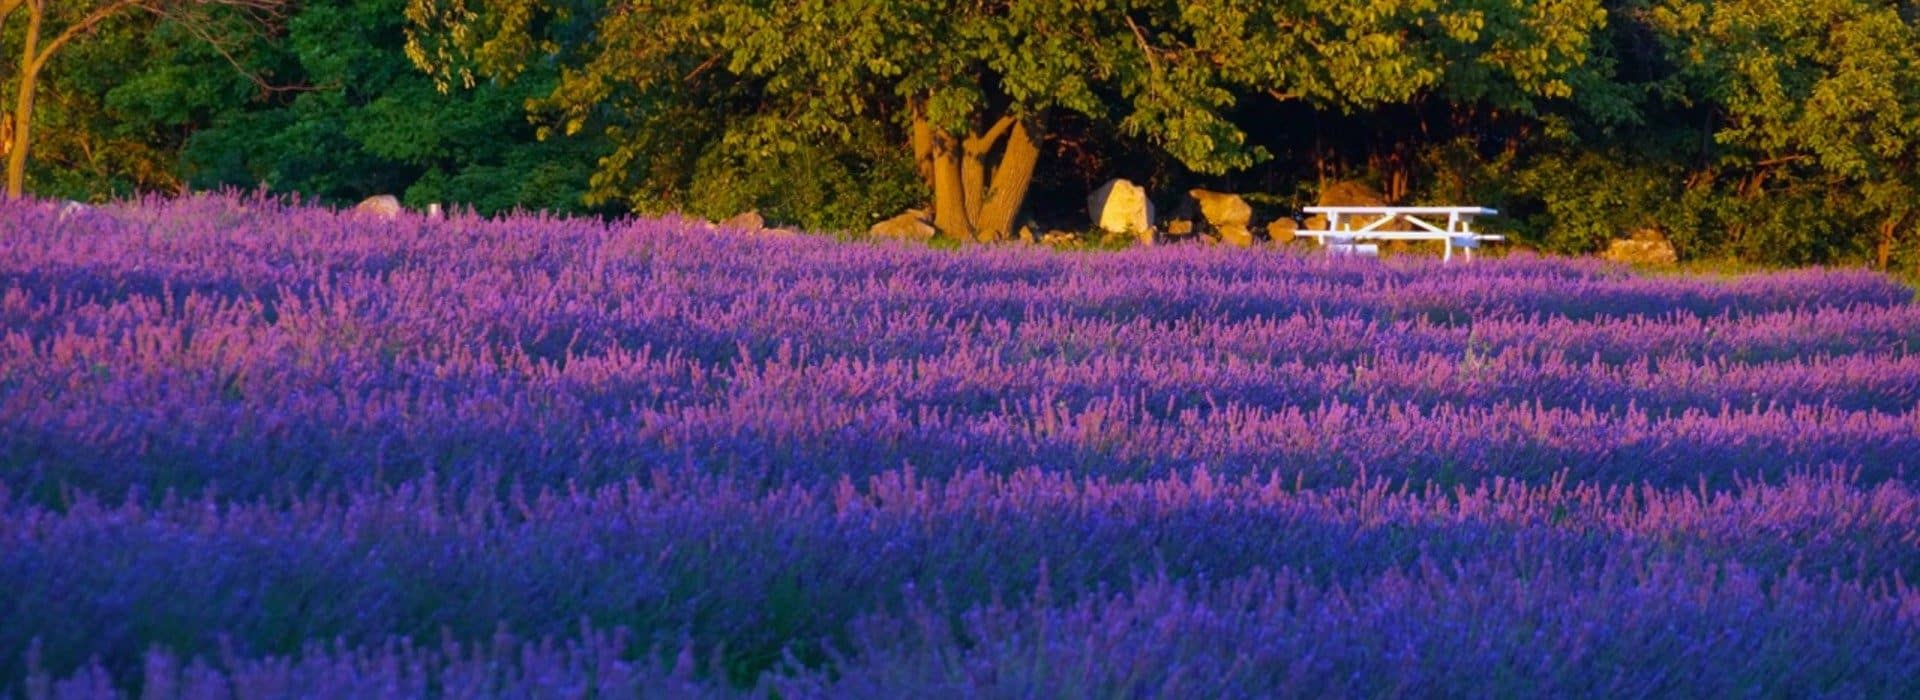 lavendar field with white table